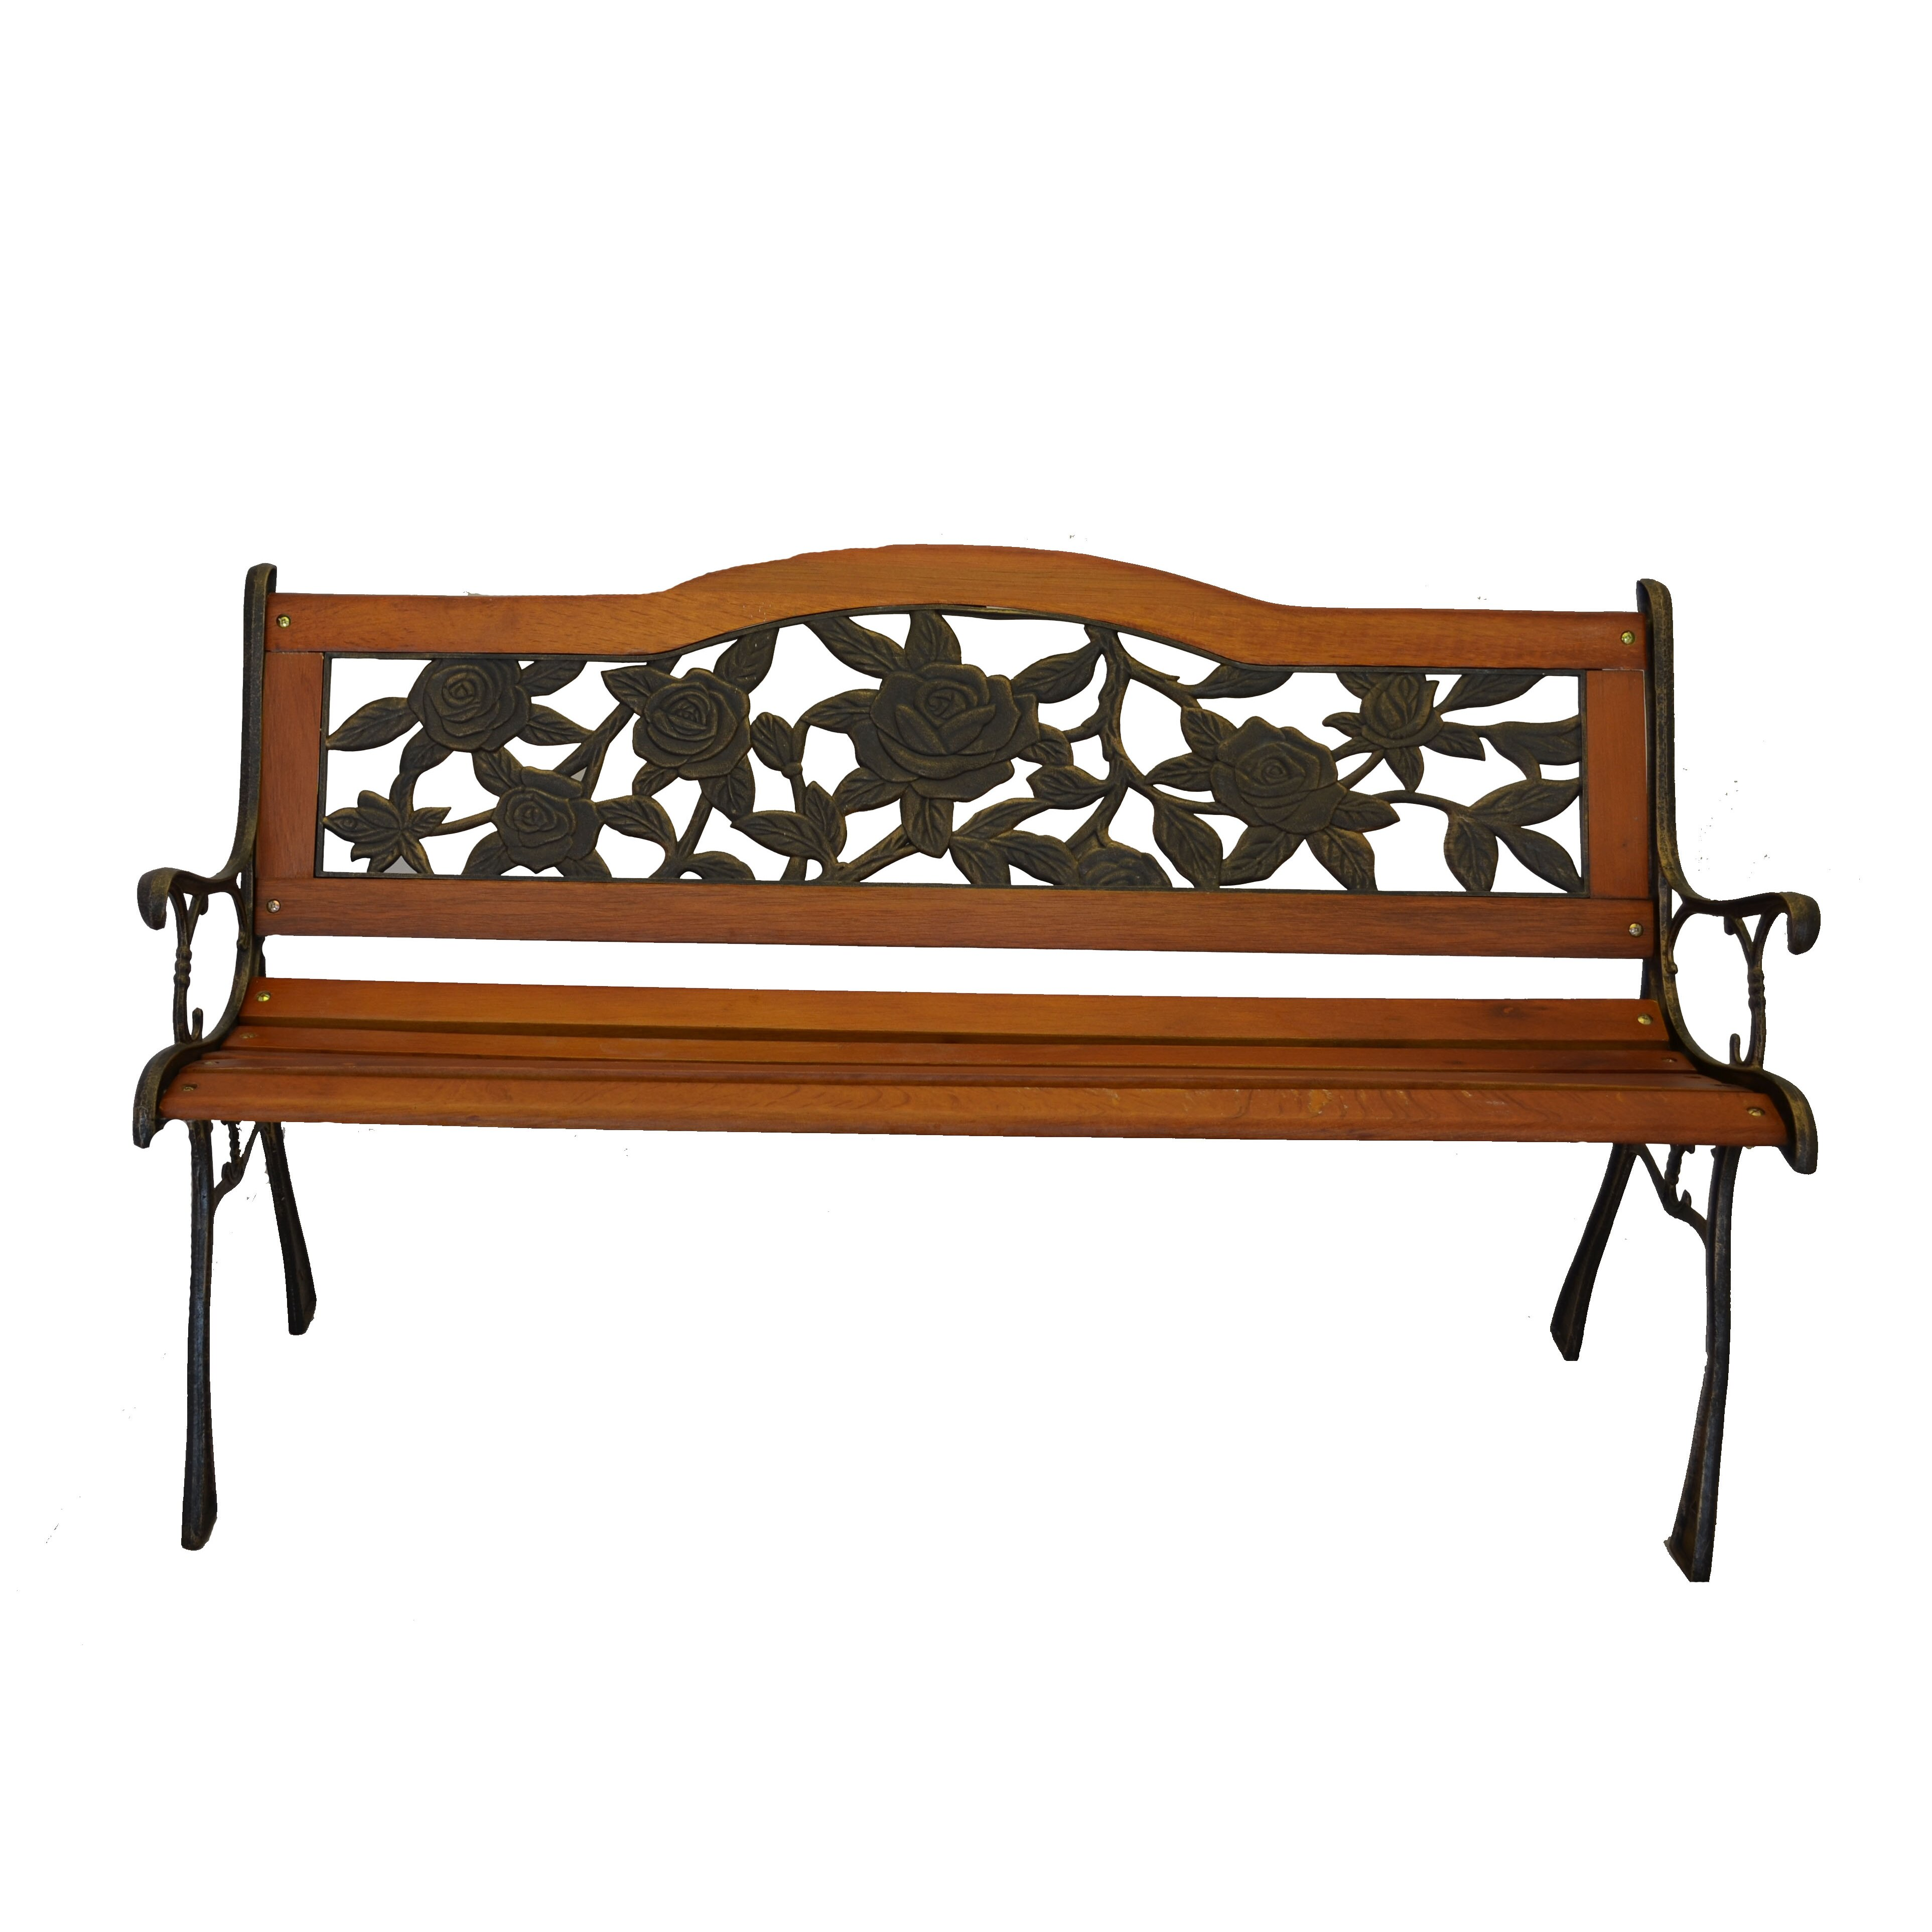 Piersurplus Rose Bloom Cast Iron Park Bench Reviews Wayfair